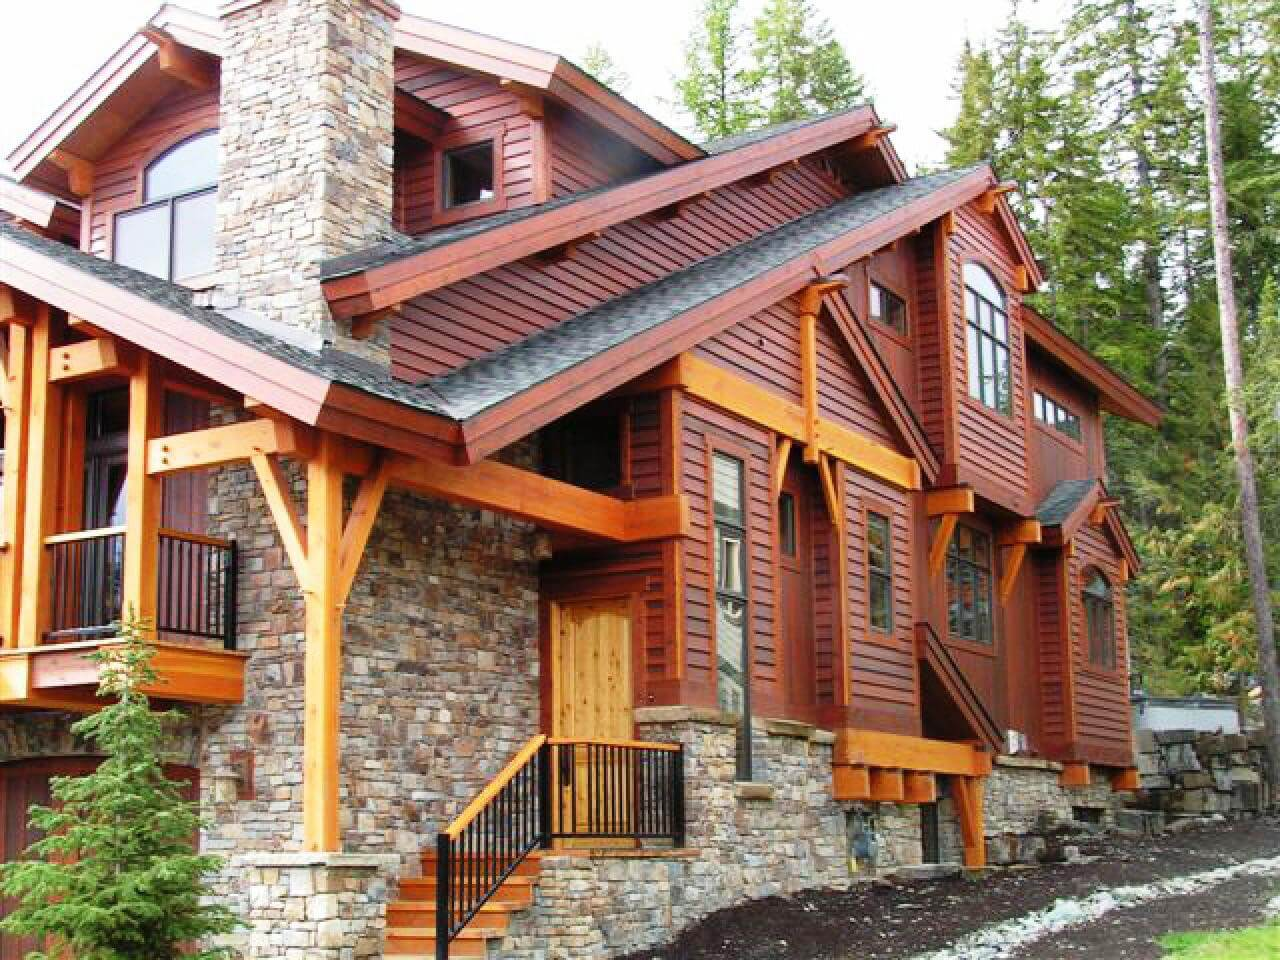 Wood siding is a classic addition to any home in any shape